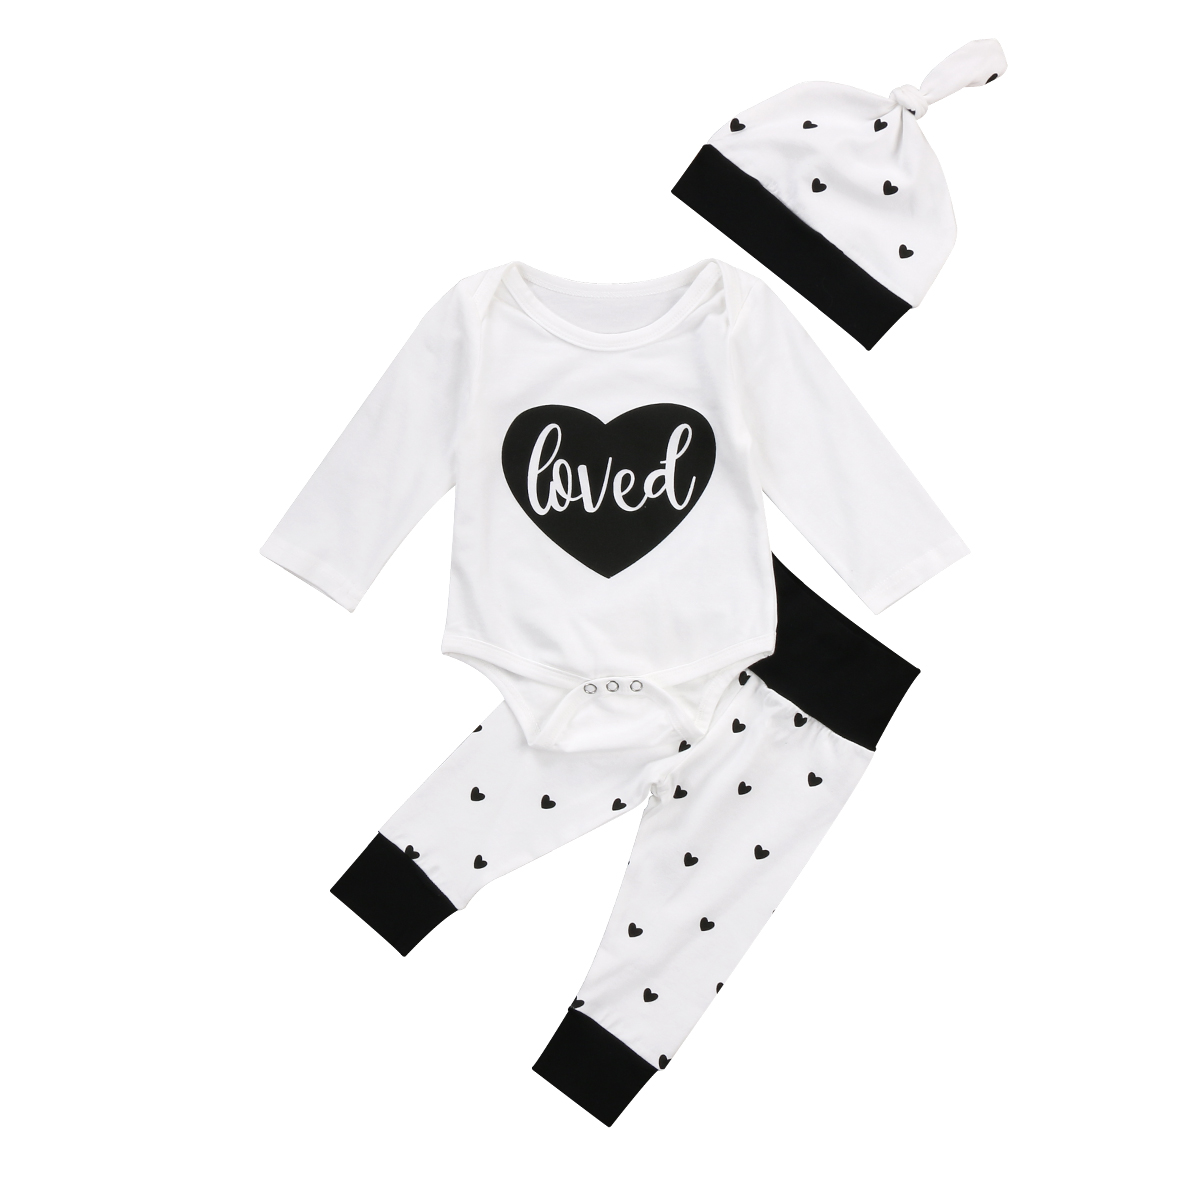 Newborn Infant Baby Girls Boys Cotton Romper Jumpsuit Pants Outfits Set baby girl clothes baby girl Clothes